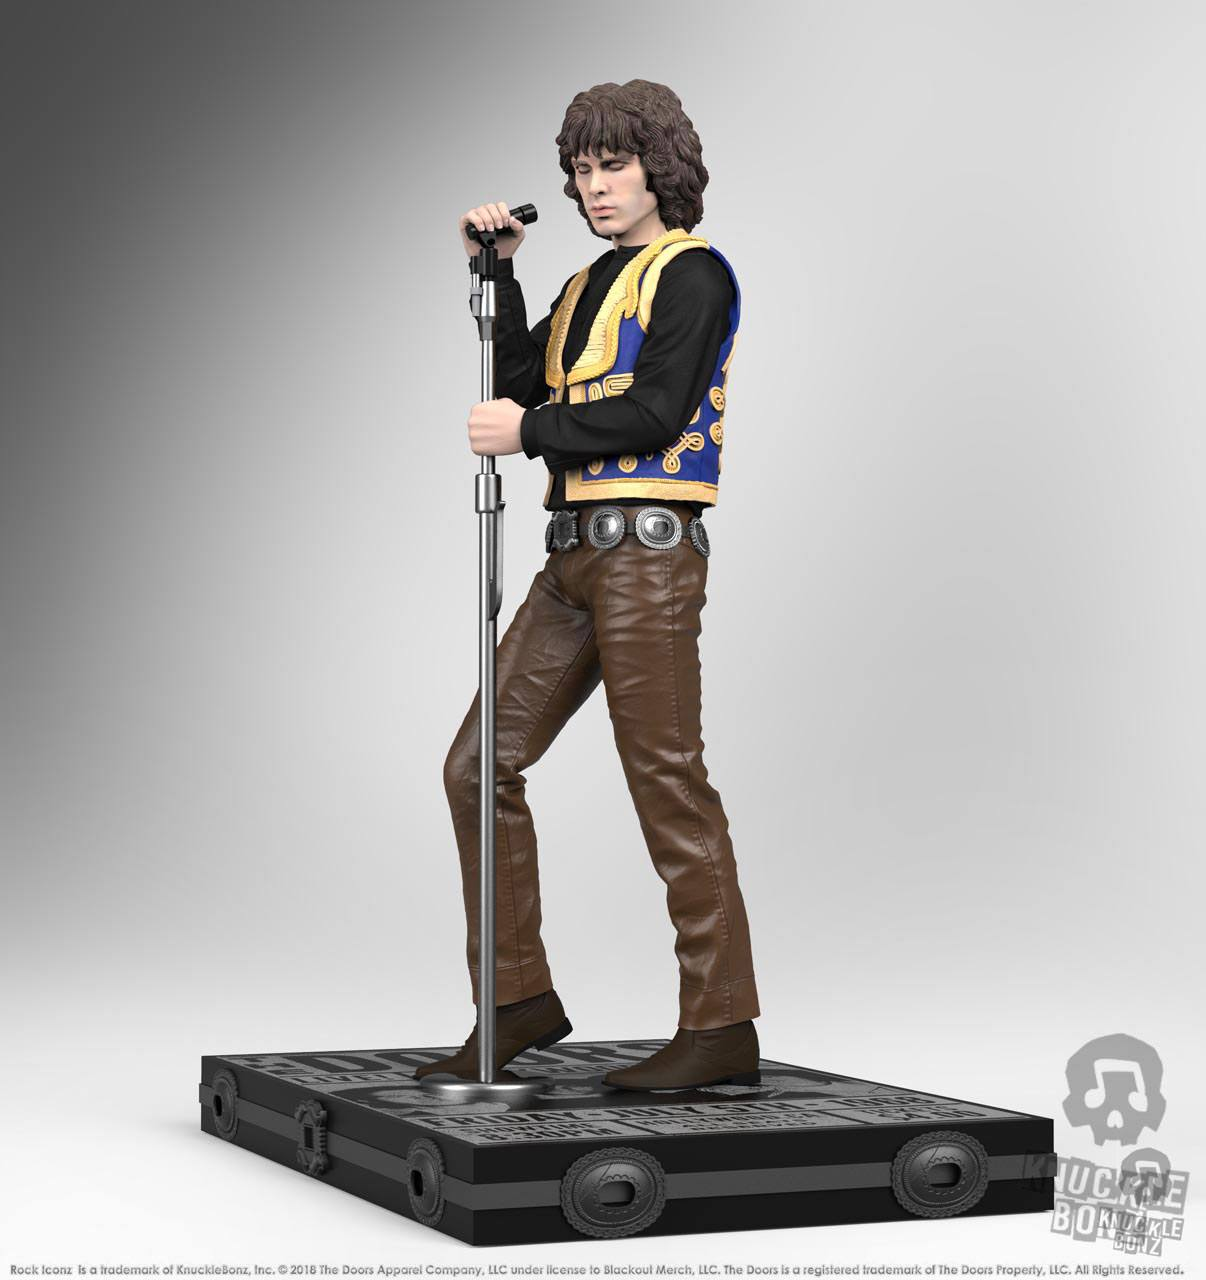 Jim Morrison Rock Iconz™ Statue Direct from KnuckleBonz The Doors